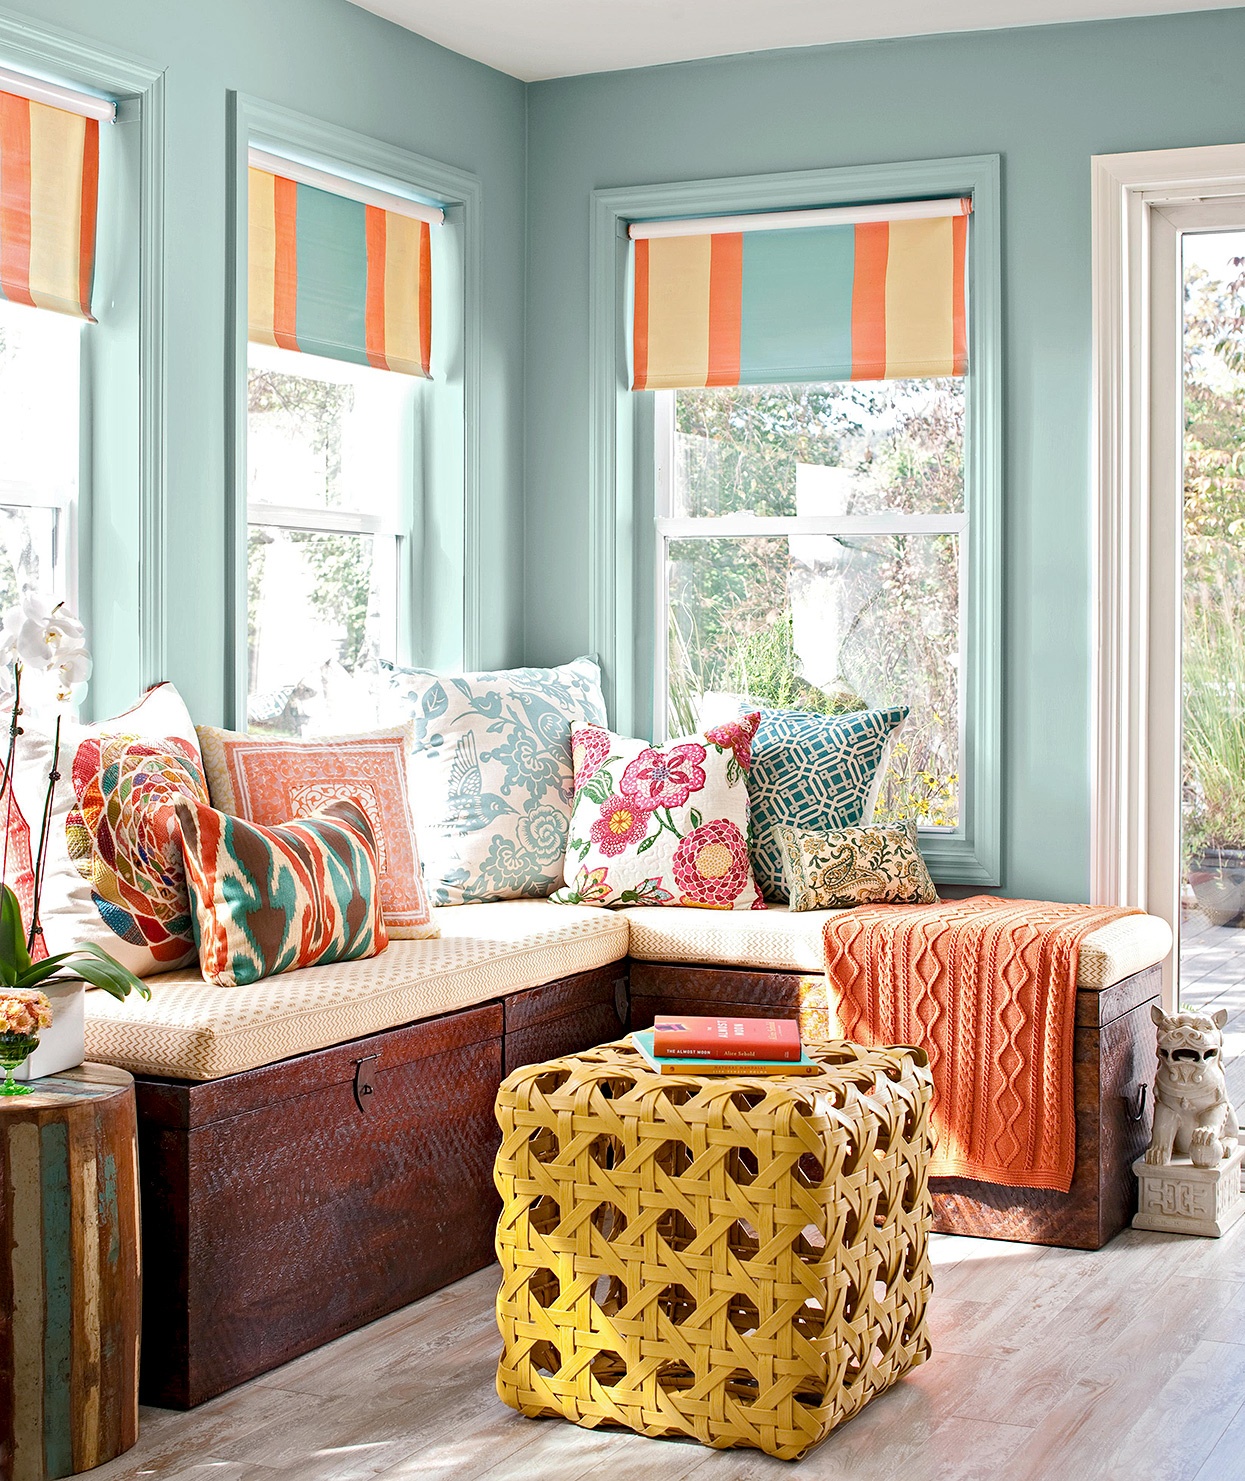 18 Sunroom Decorating Ideas For A Bright Relaxing Space Better Homes Gardens